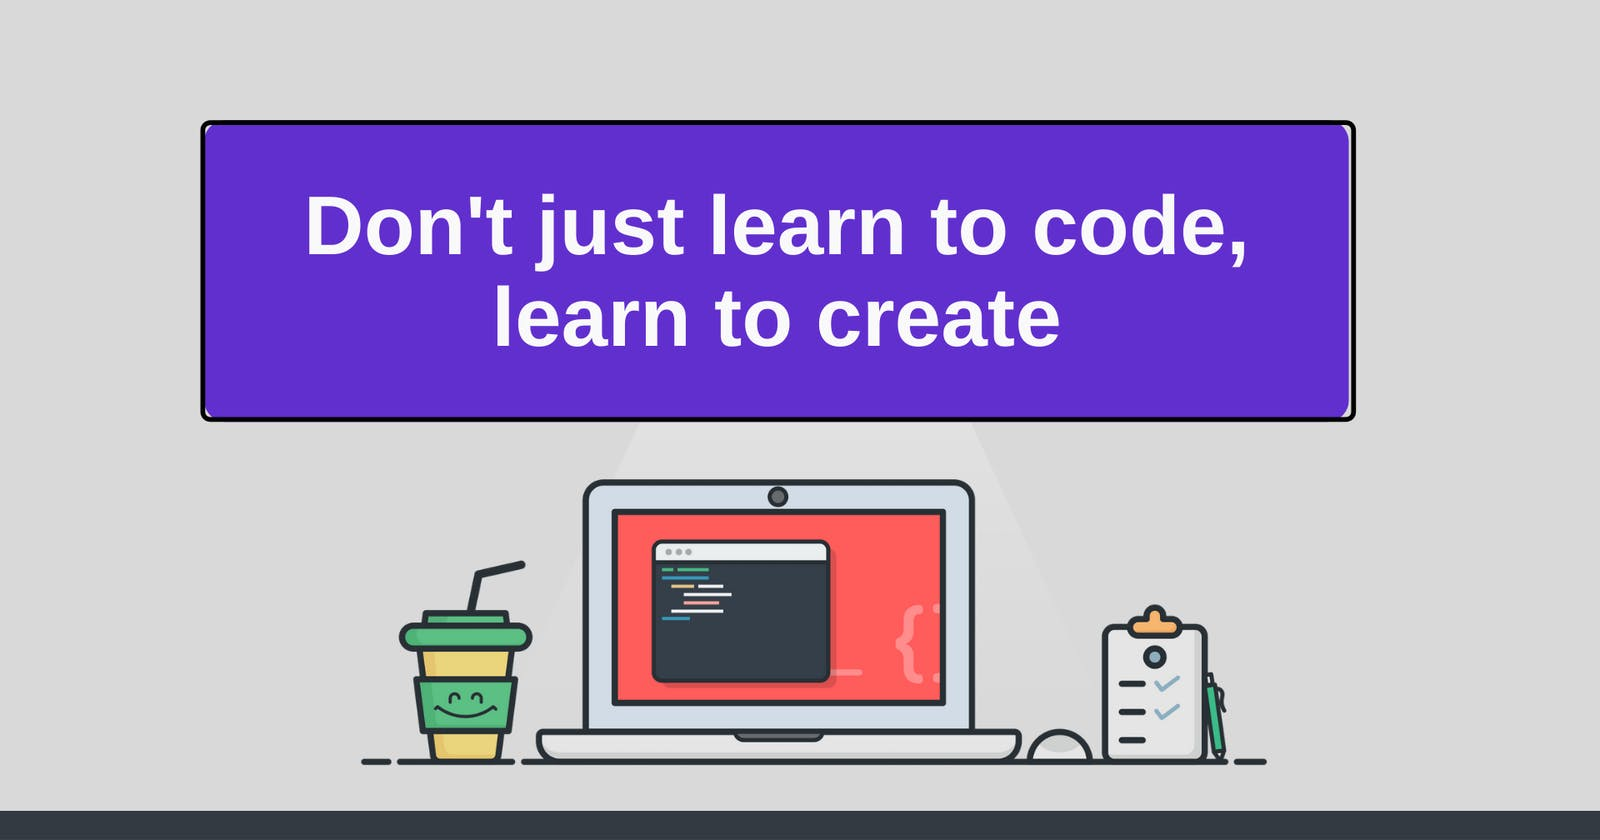 Don't just learn to code, learn to create